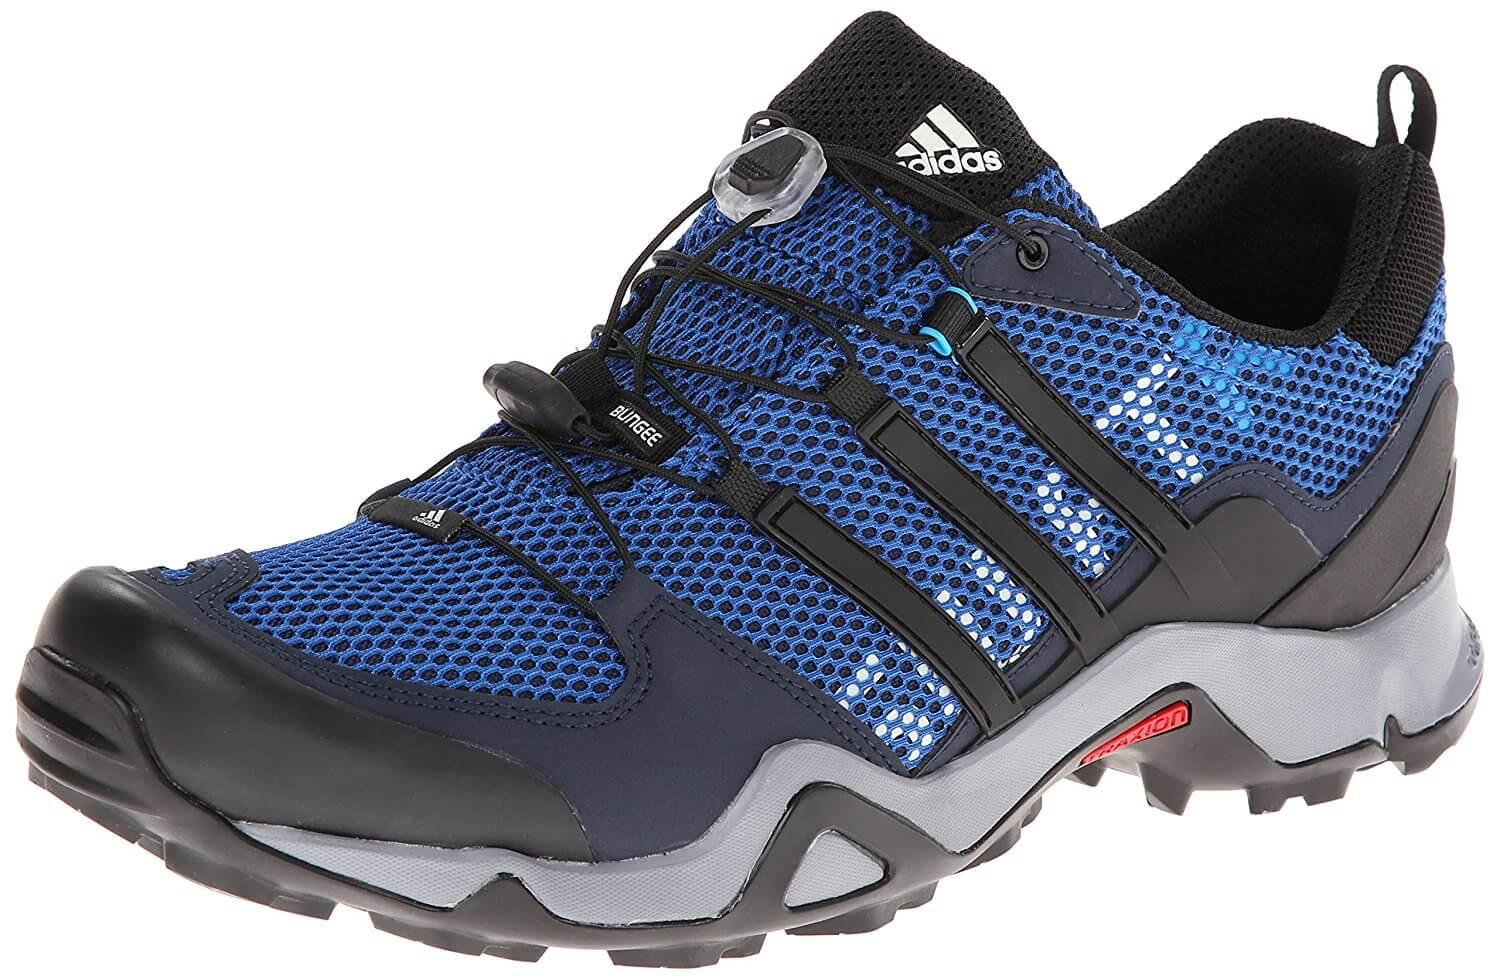 dadc914092f The Adidas Terrex Swift R GTX is an impressive and highly capable trail  runner.